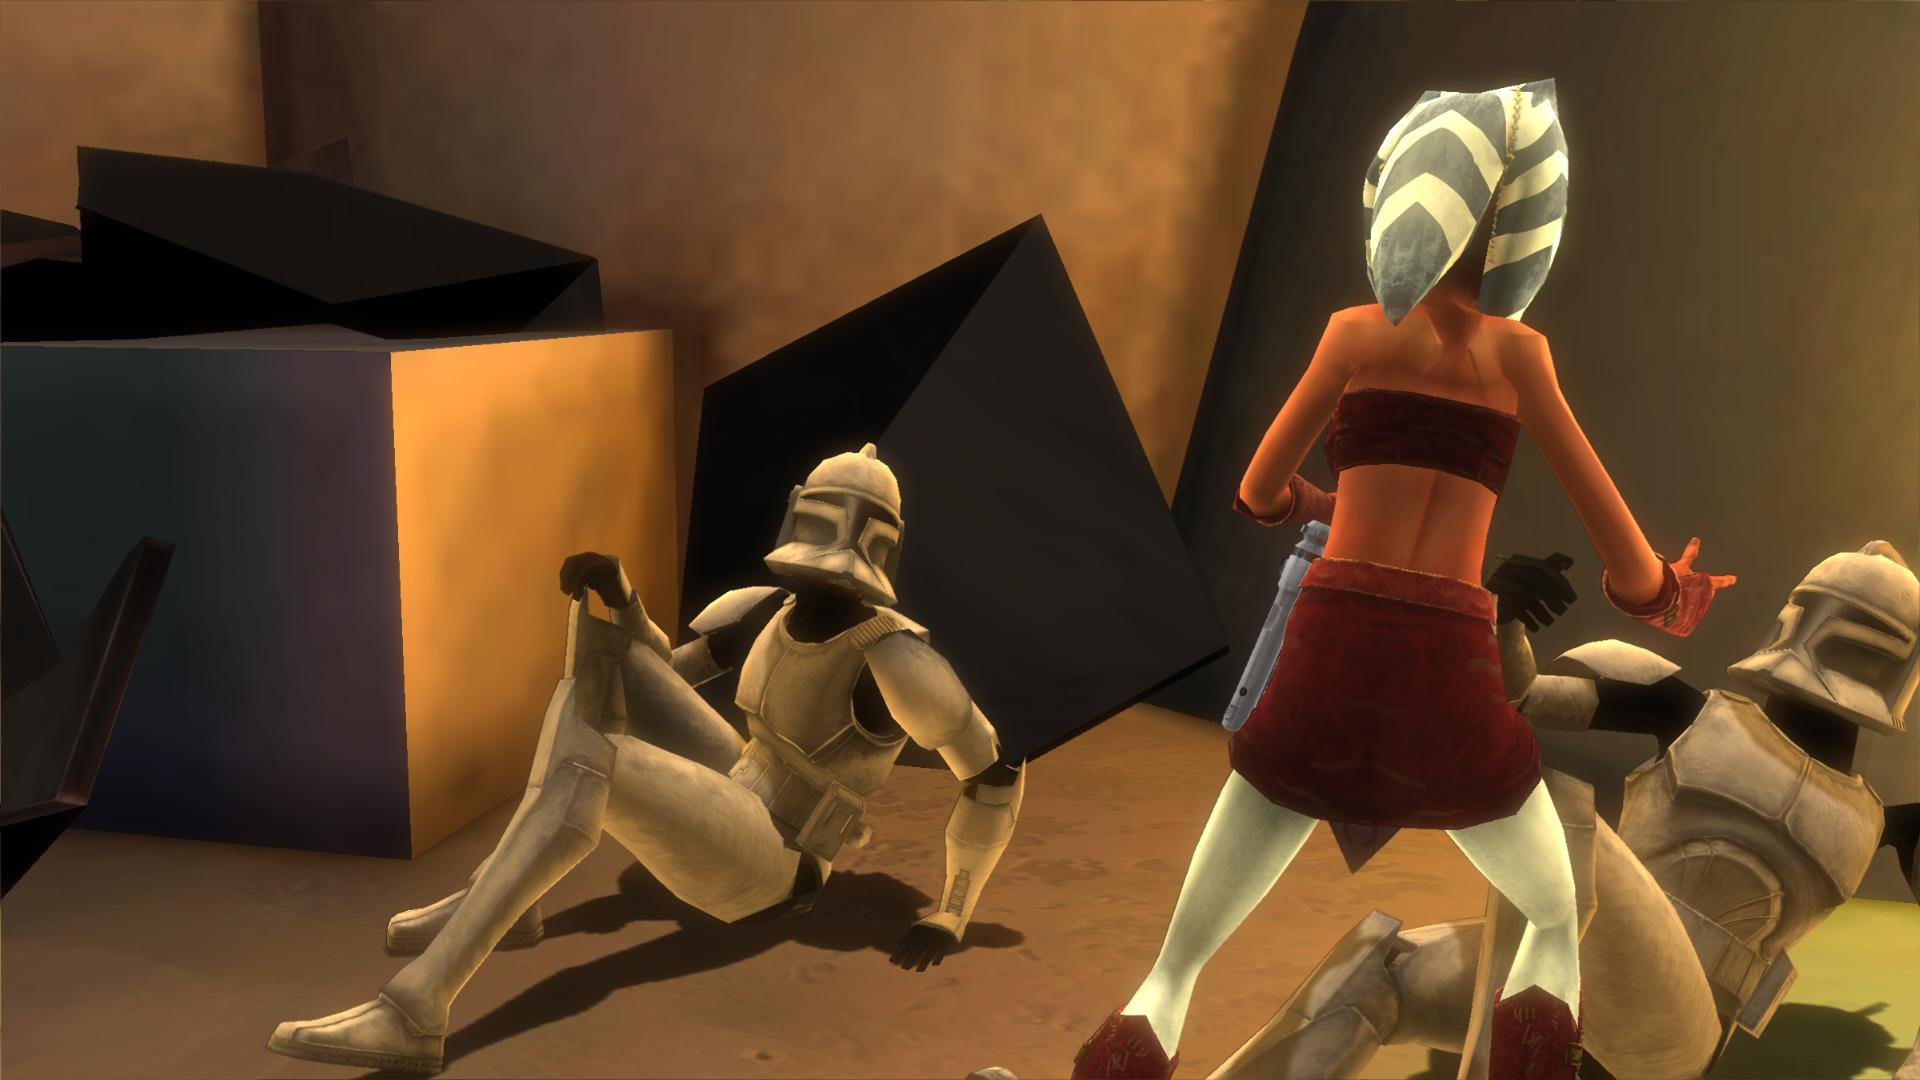 Star wars the clone wars porn games sexual video